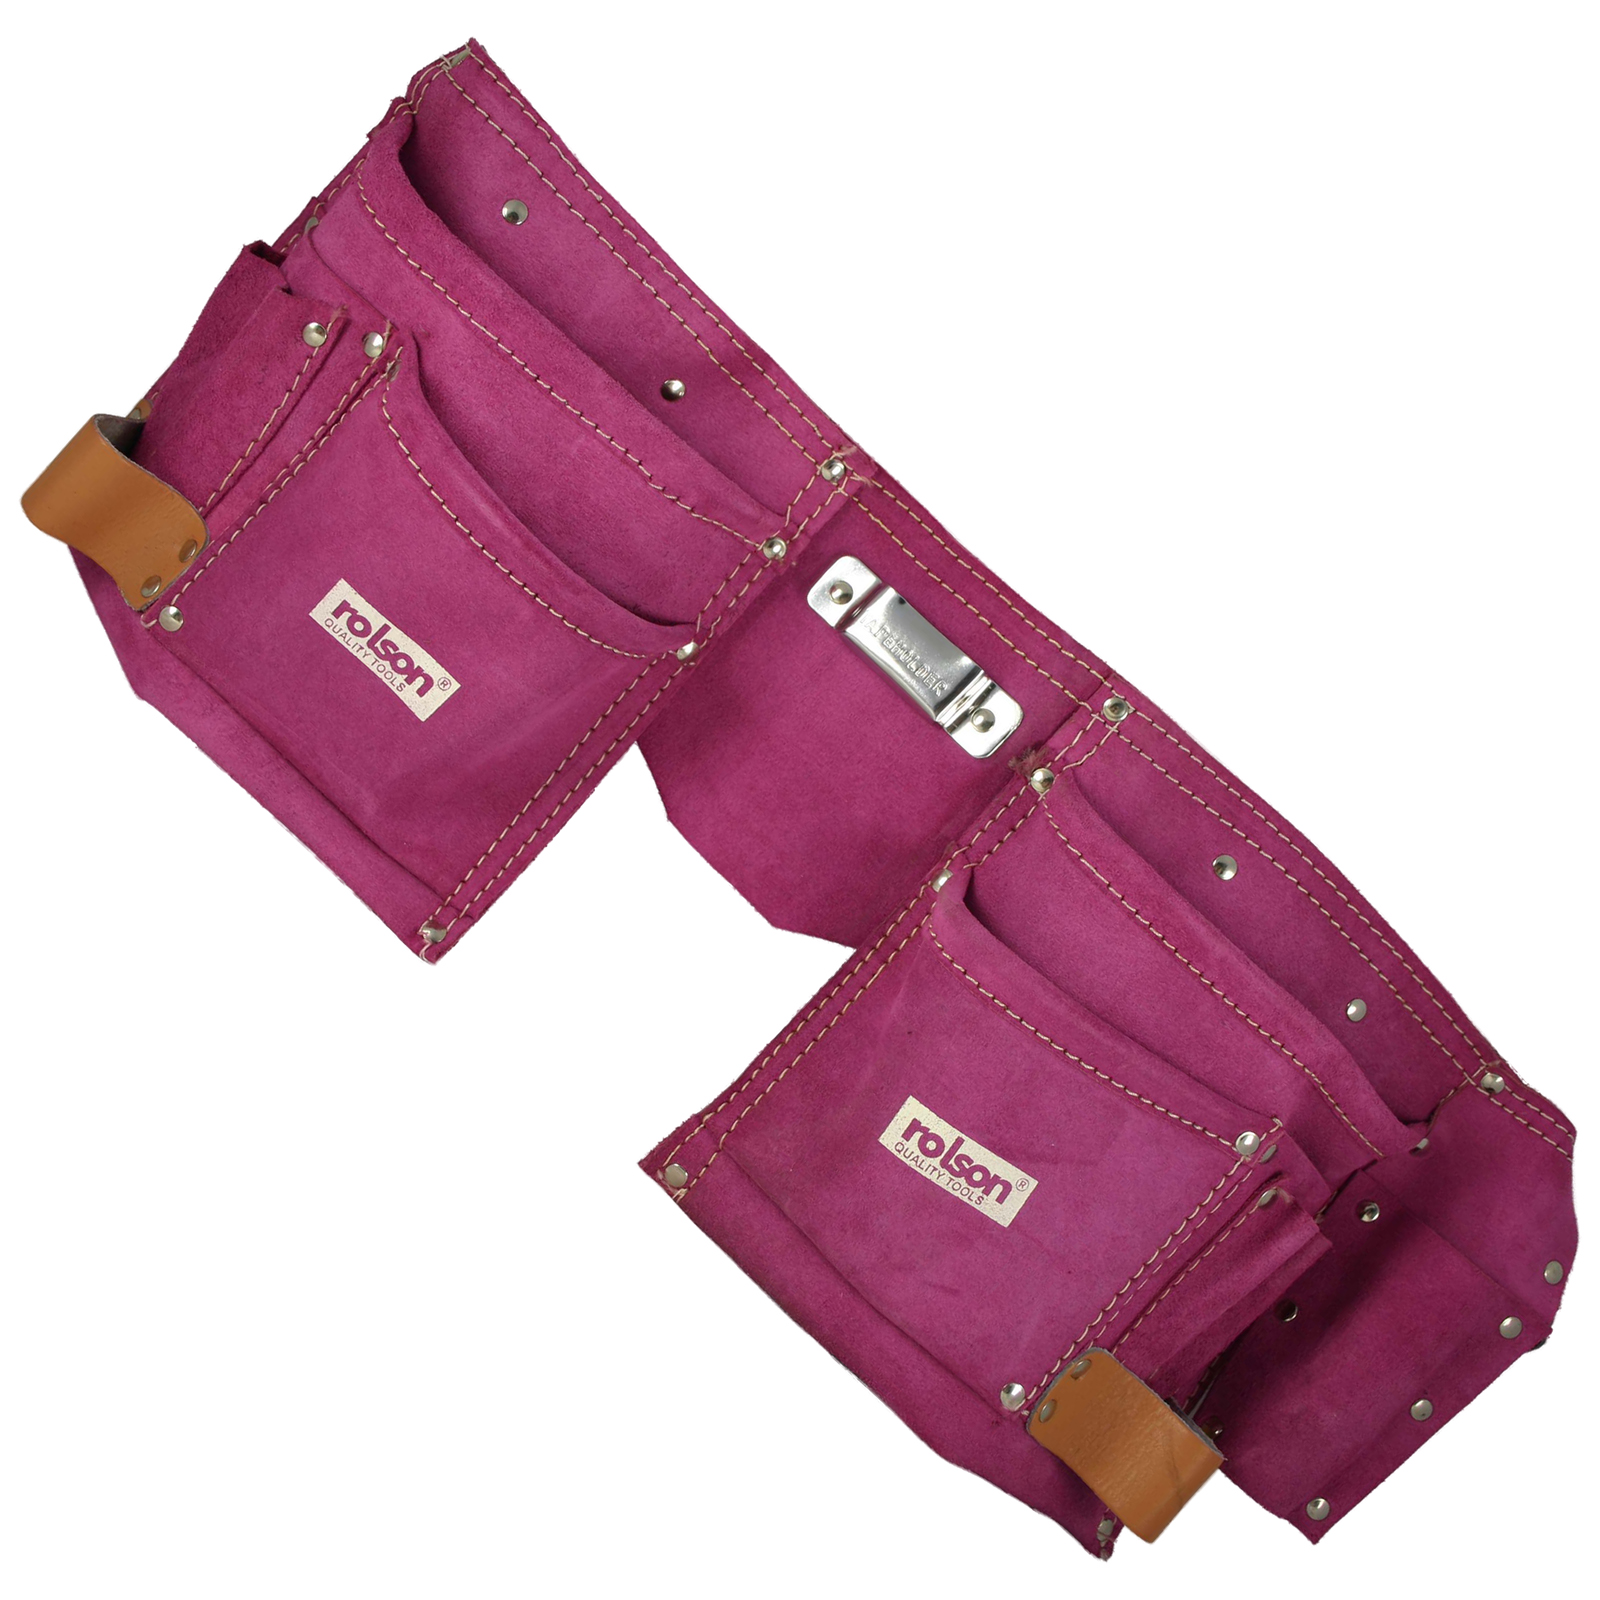 new rolson 68630 pink leather tool belt pouch